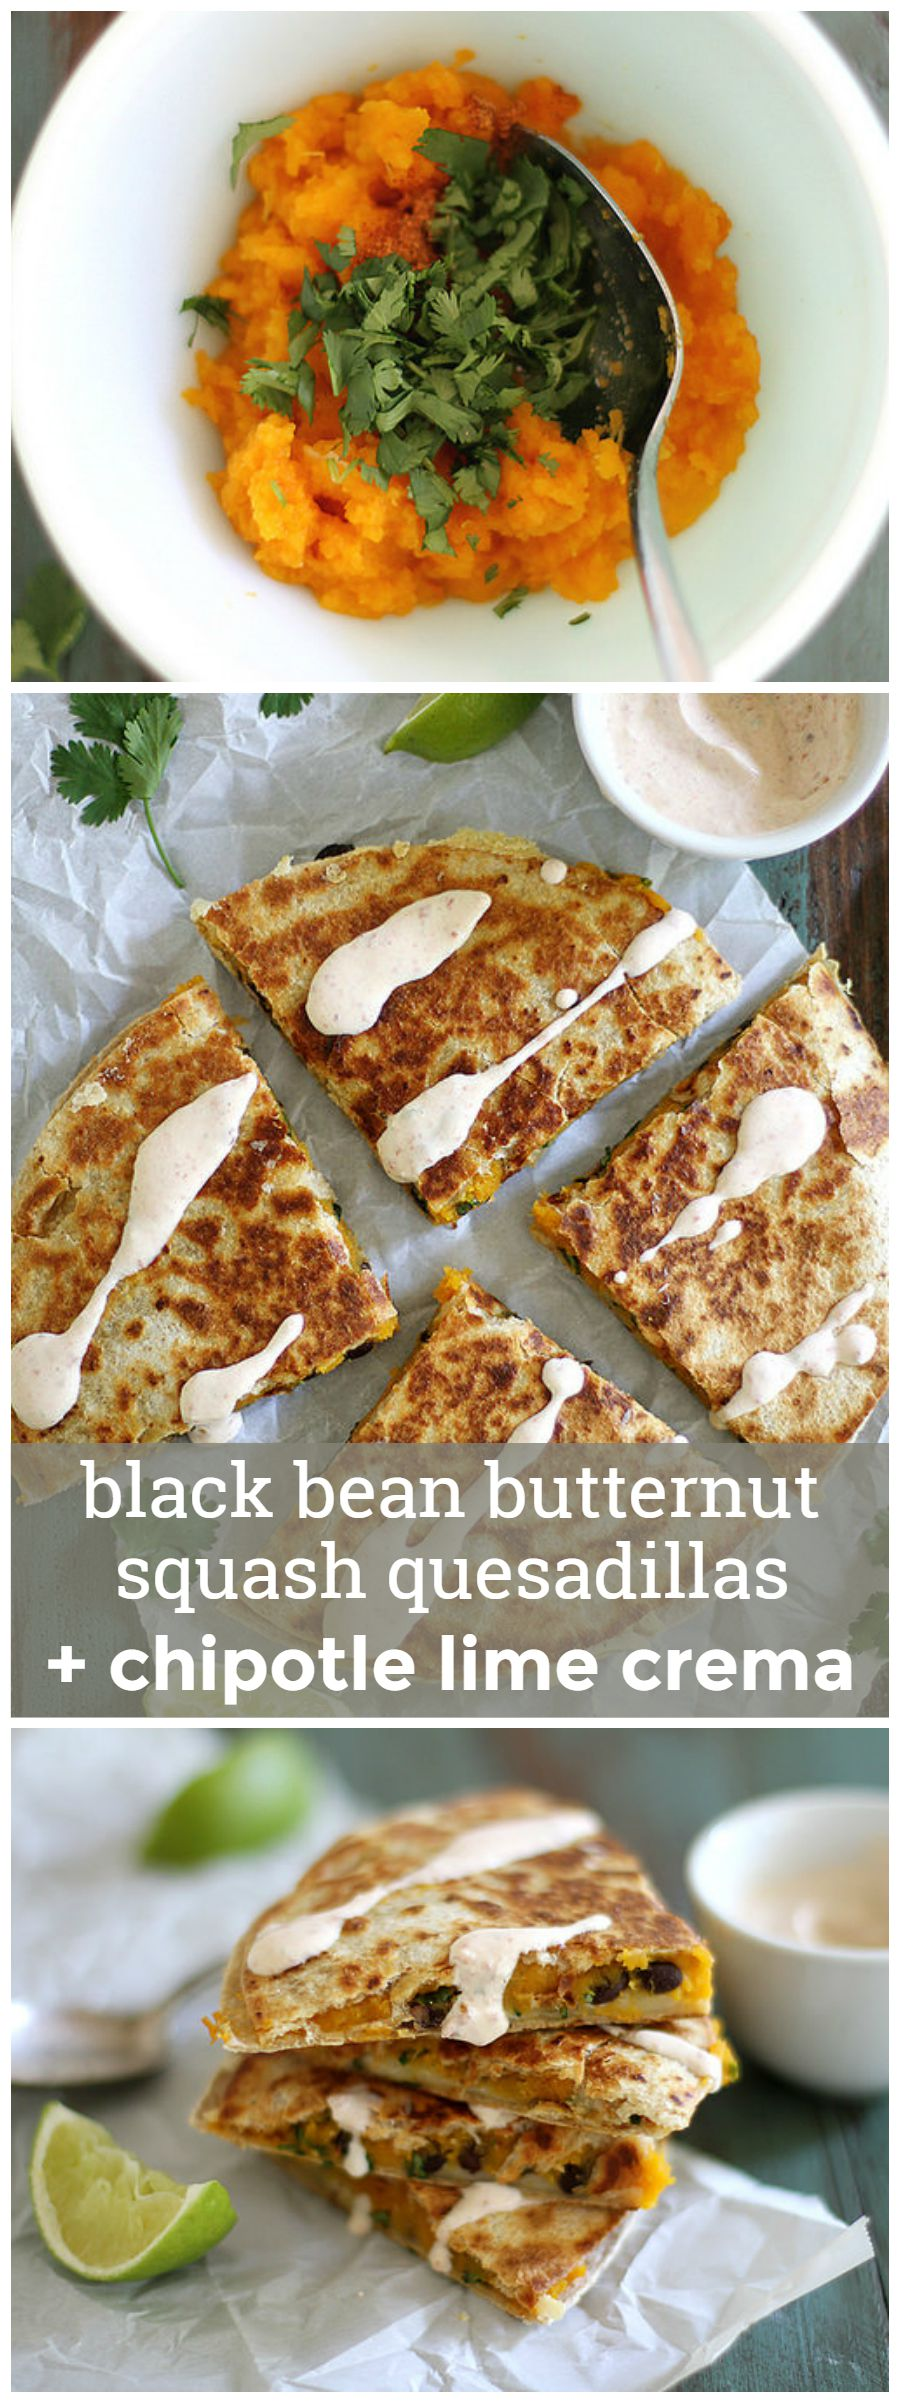 Black Bean Butternut Squash Quesadillas with Chipotle Lime Crema -- Make this easy recipe and never eat boring quesadillas again. girlversusdough.com @girlversusdough